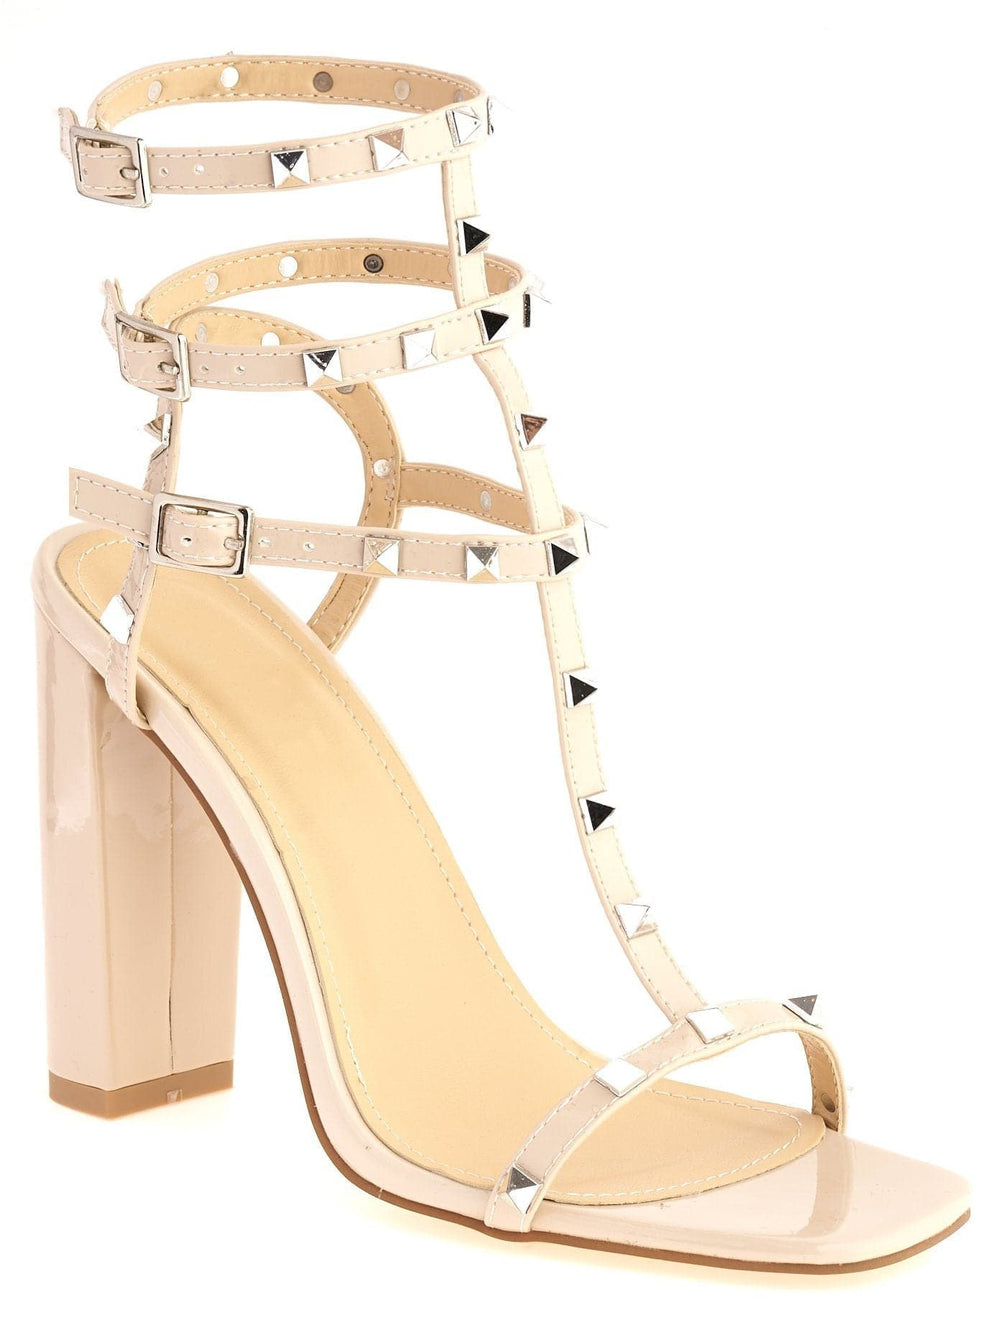 Tessa Studded Strappy High Block Sandal in Nude Patent